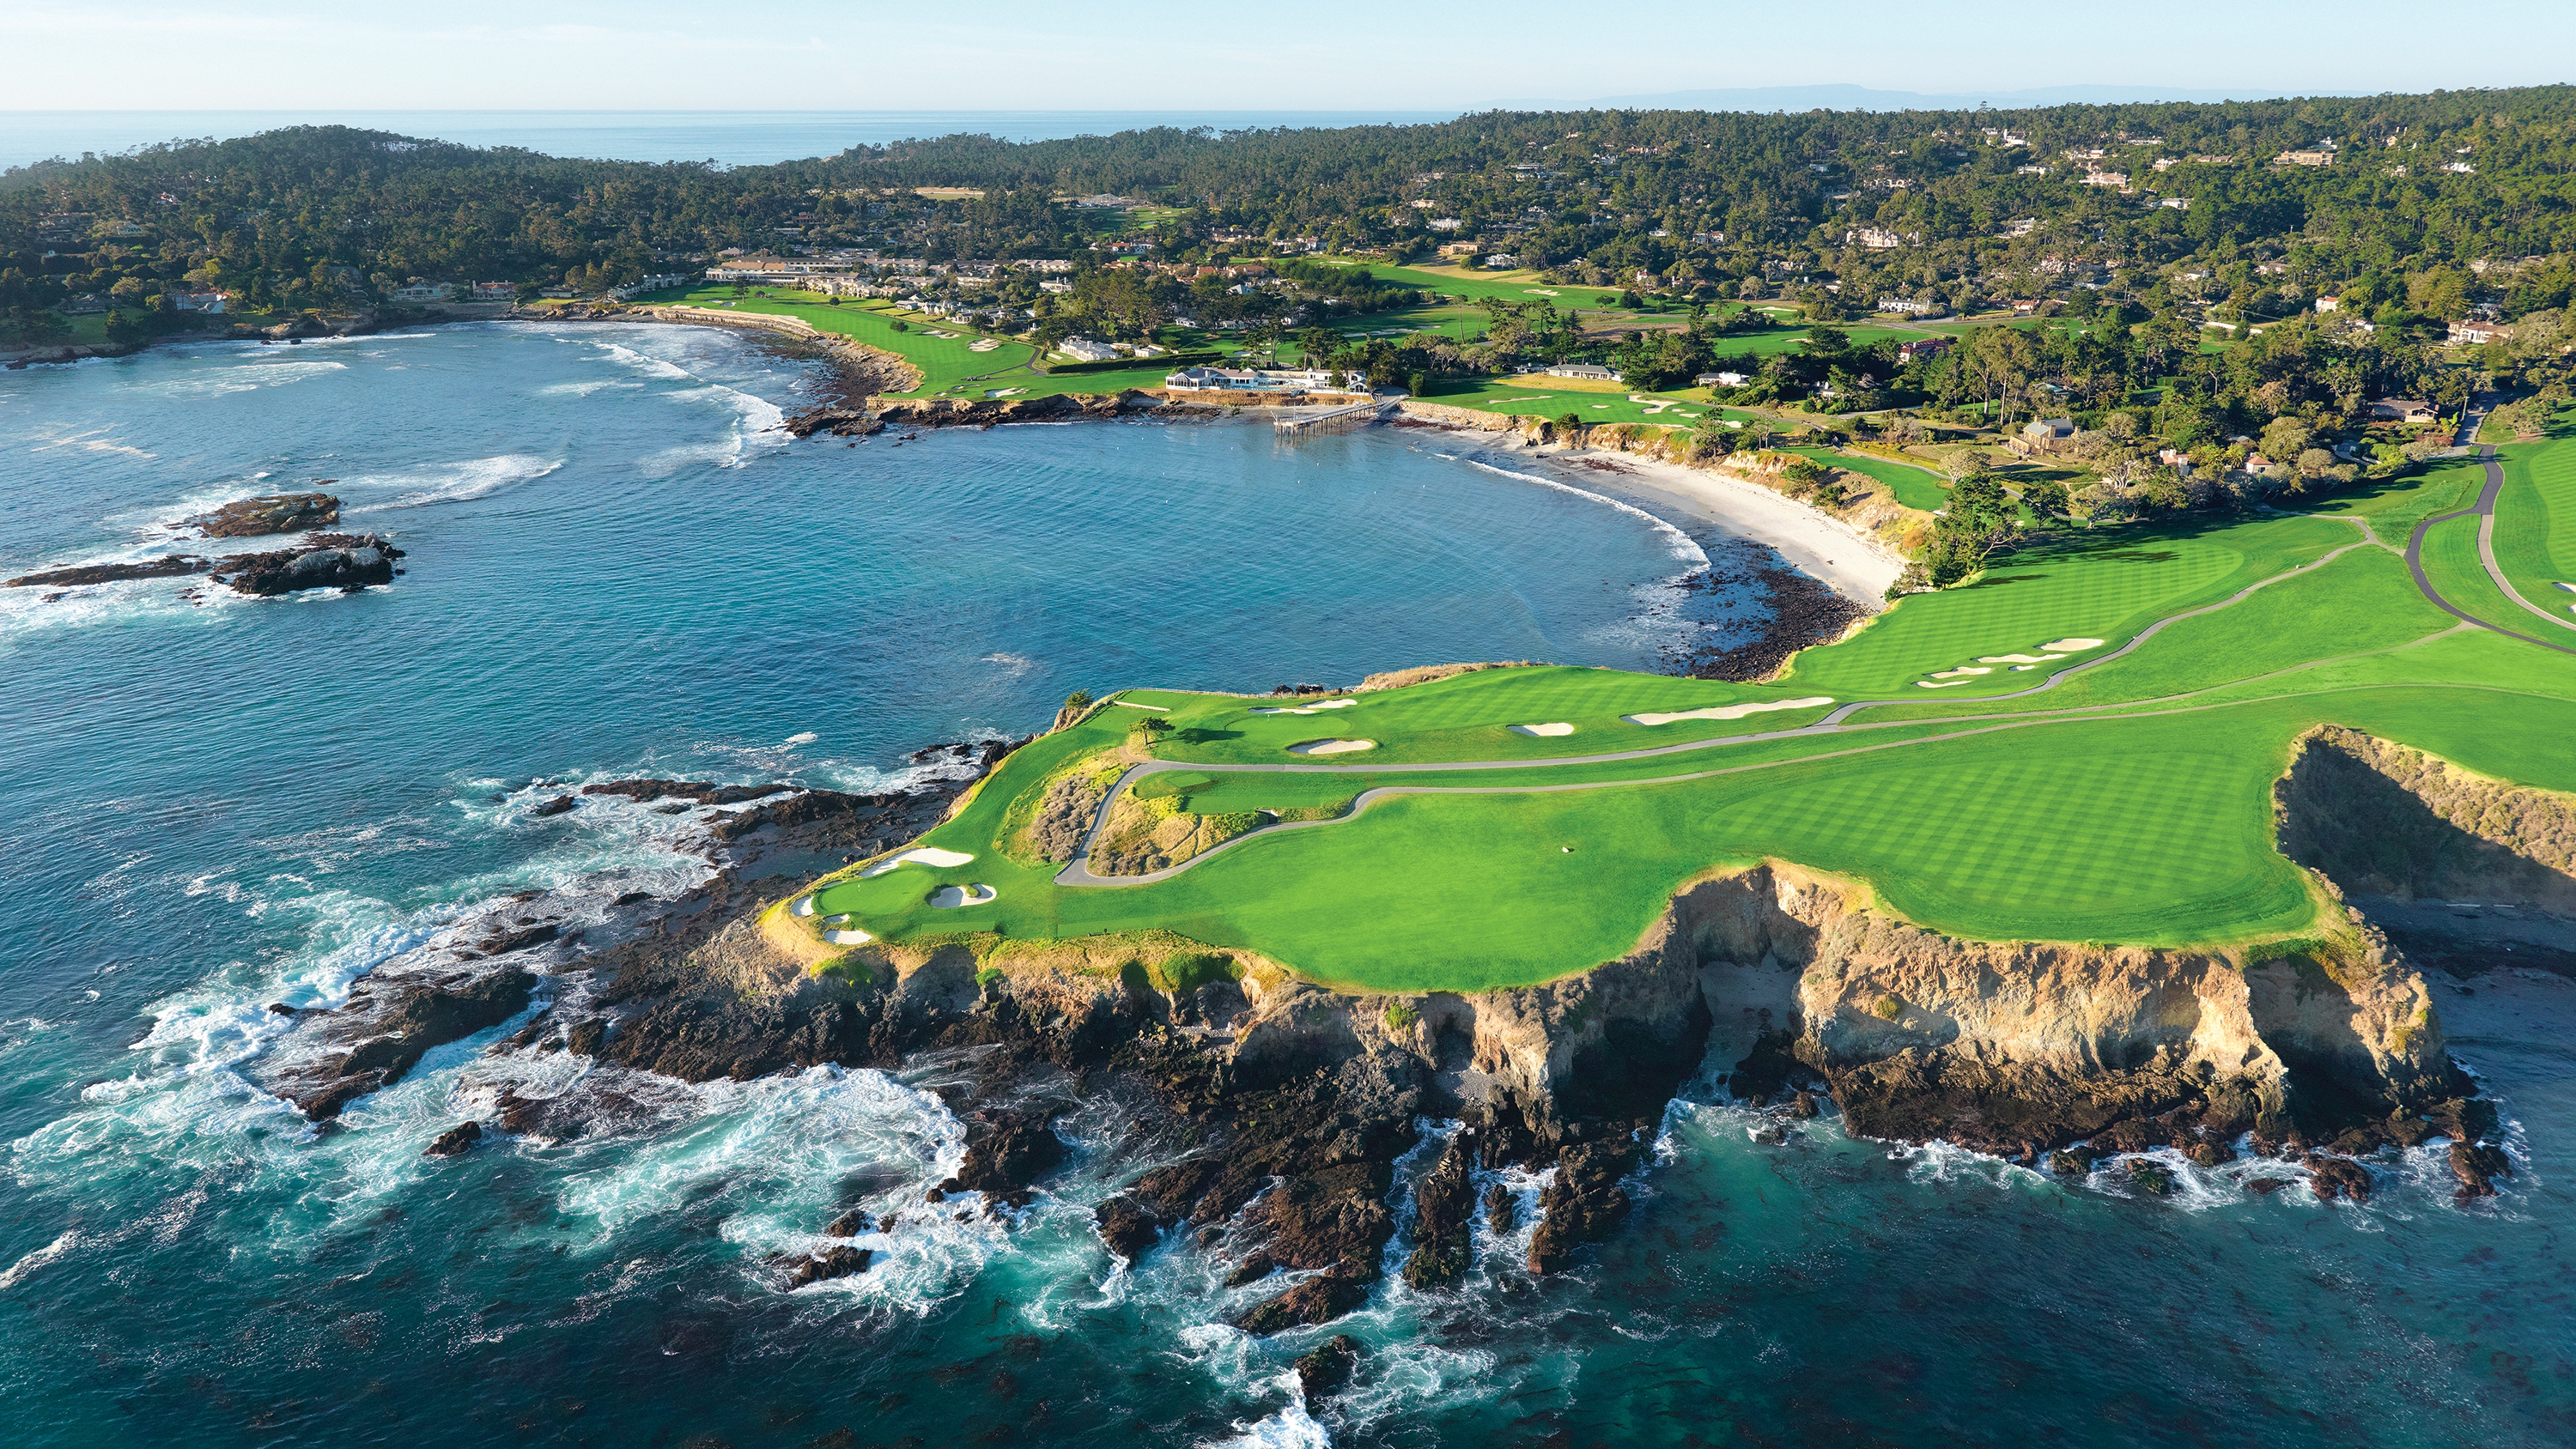 arrowhead-point-at-pebble-beach-golf-links_13664-credit-evan-schiller-cfc14fbf-2377-478f-bf89-46a55508c71b